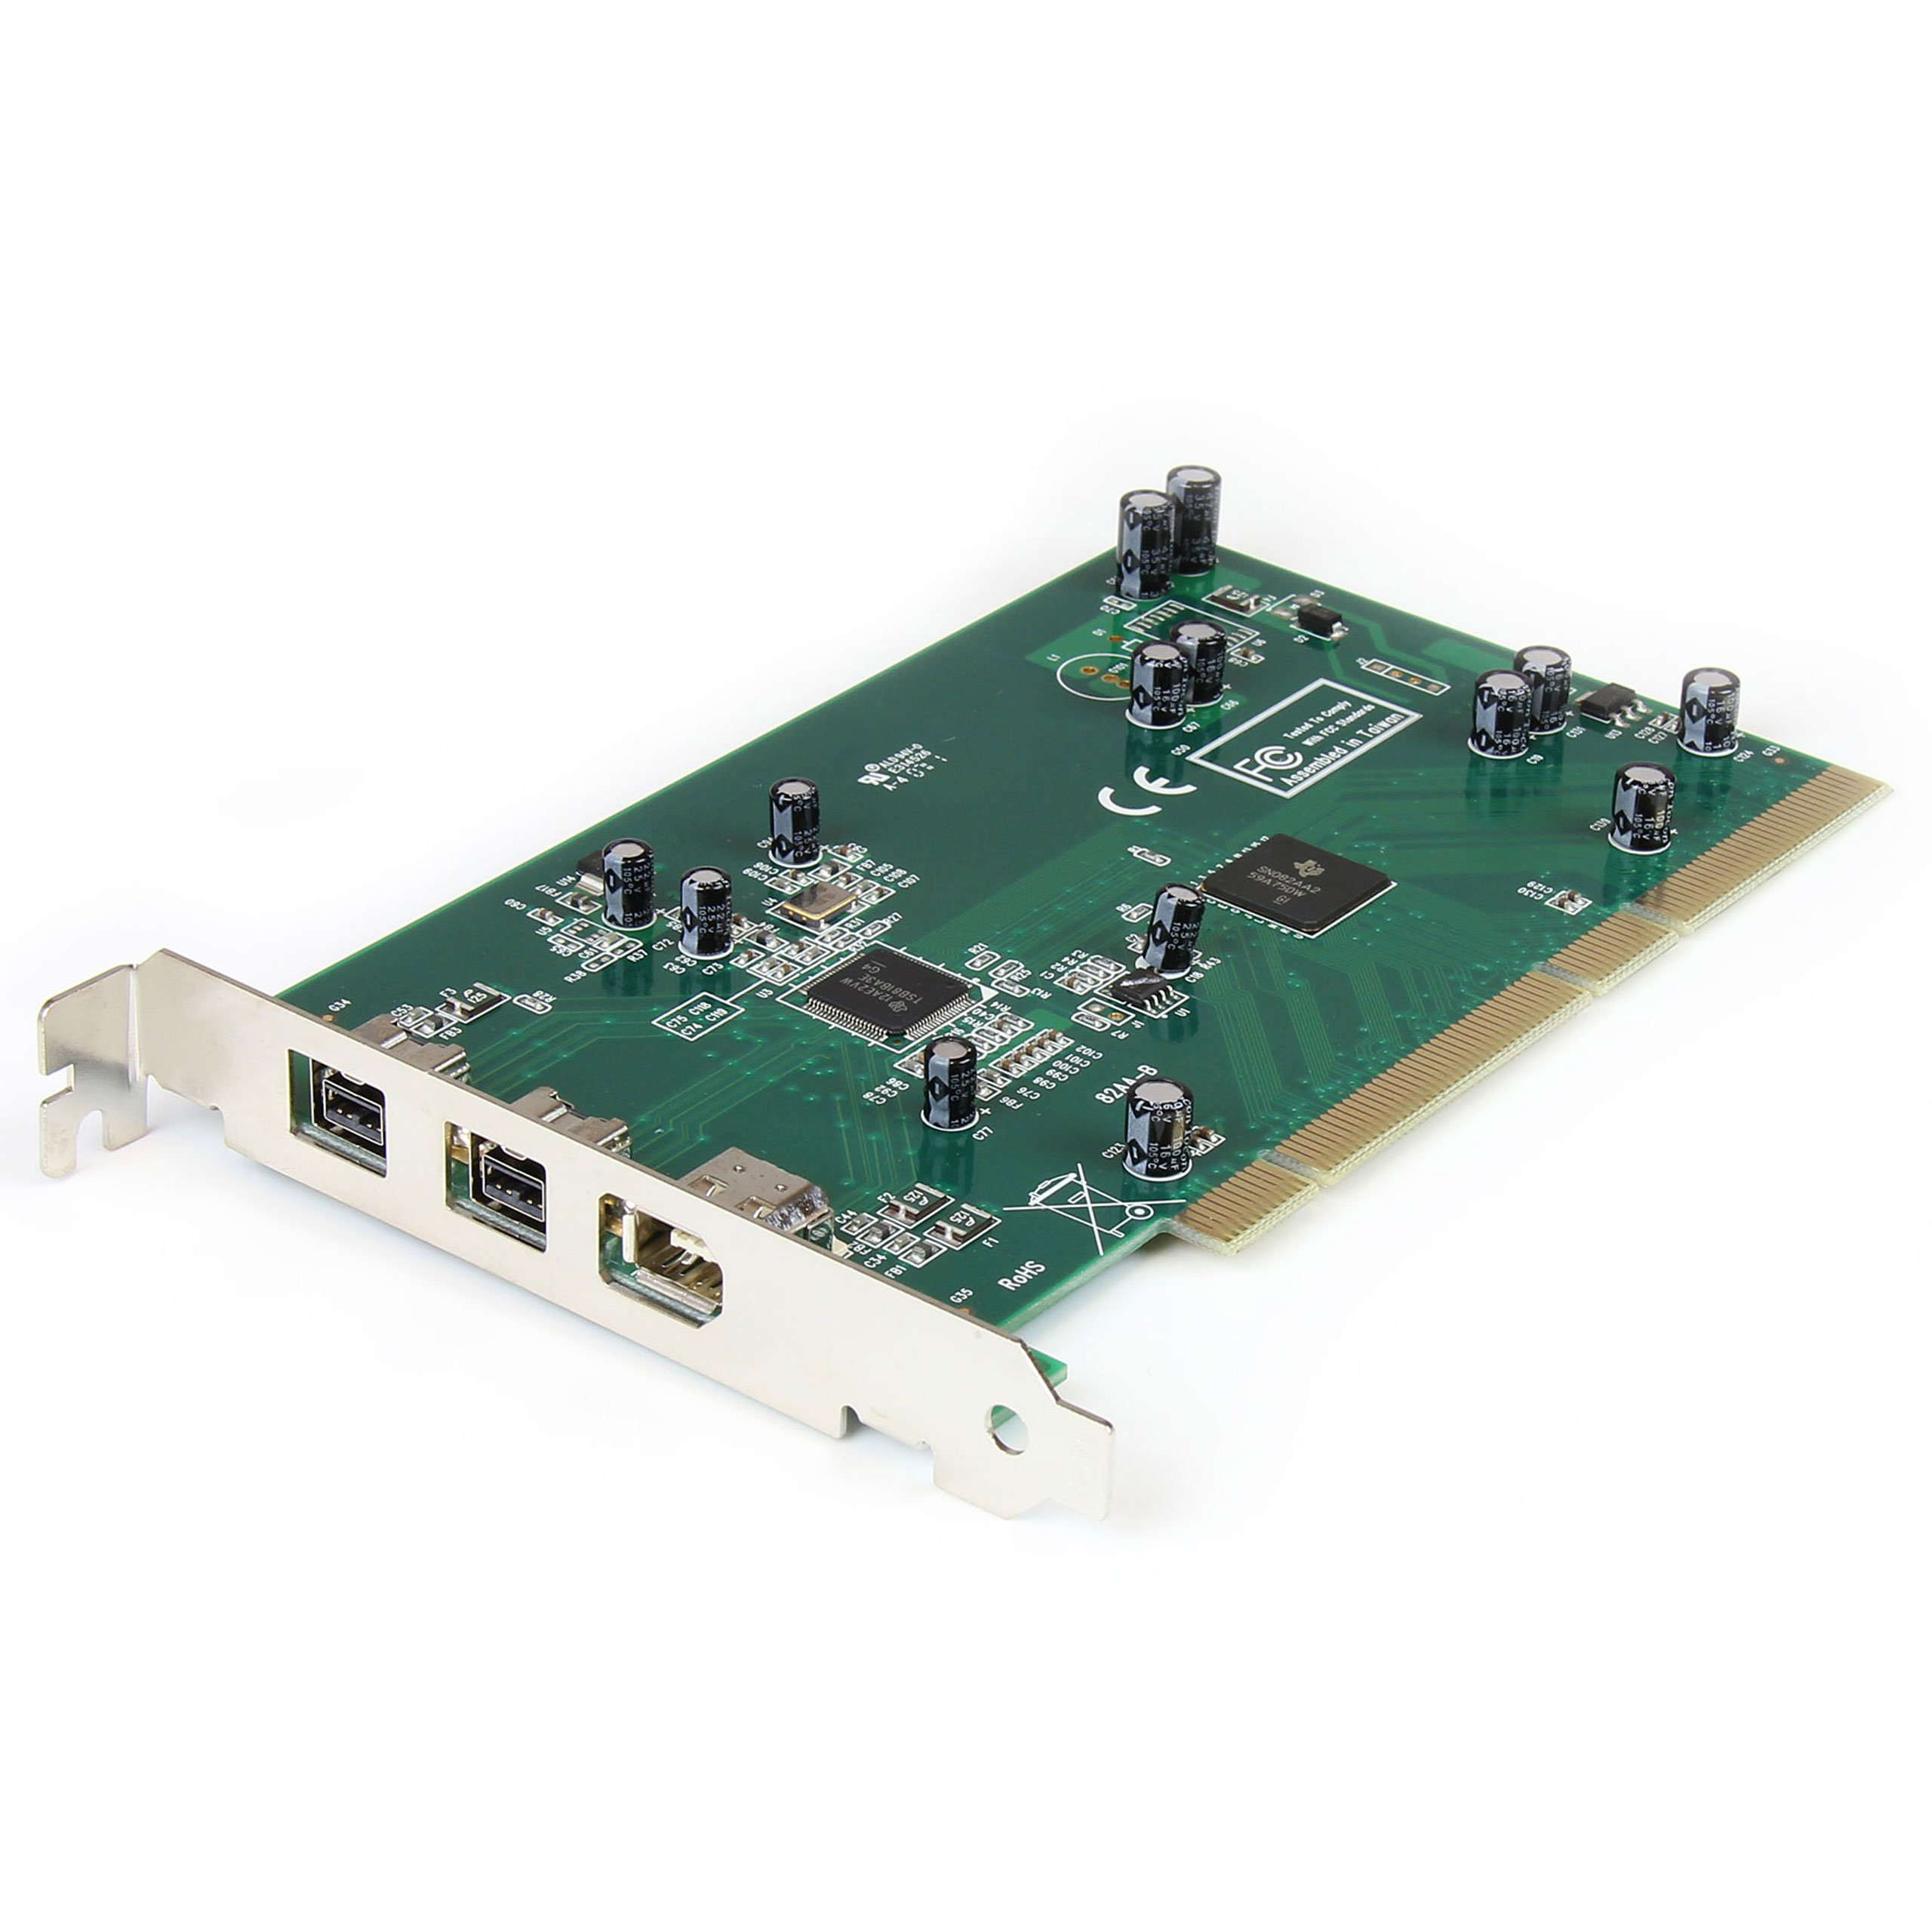 3 Port 2b 1a PCI 1394b FireWire Adapter Card with DV Editing